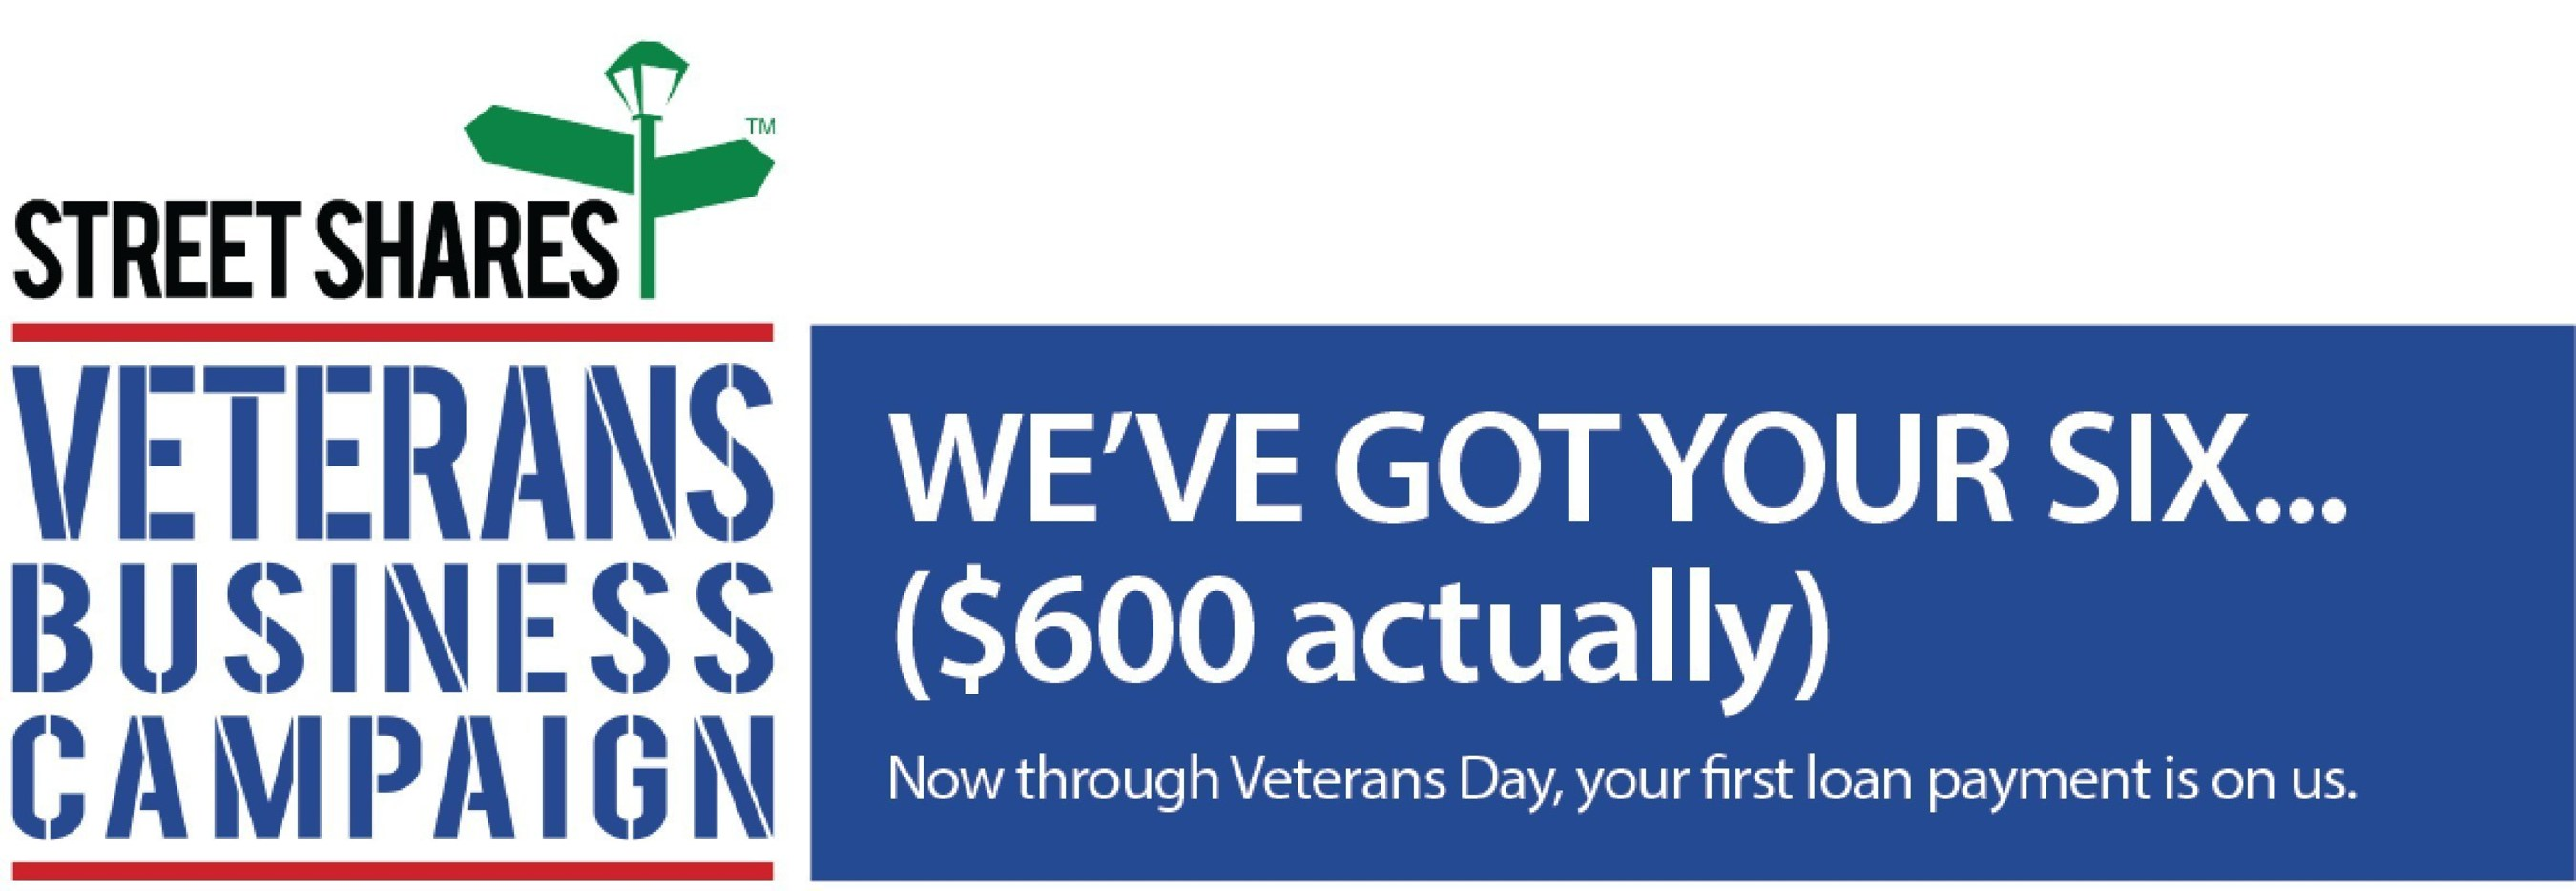 To celebrate National Veterans Small Business Week and Veterans Day, StreetShares introduces 'GOT YOUR ...